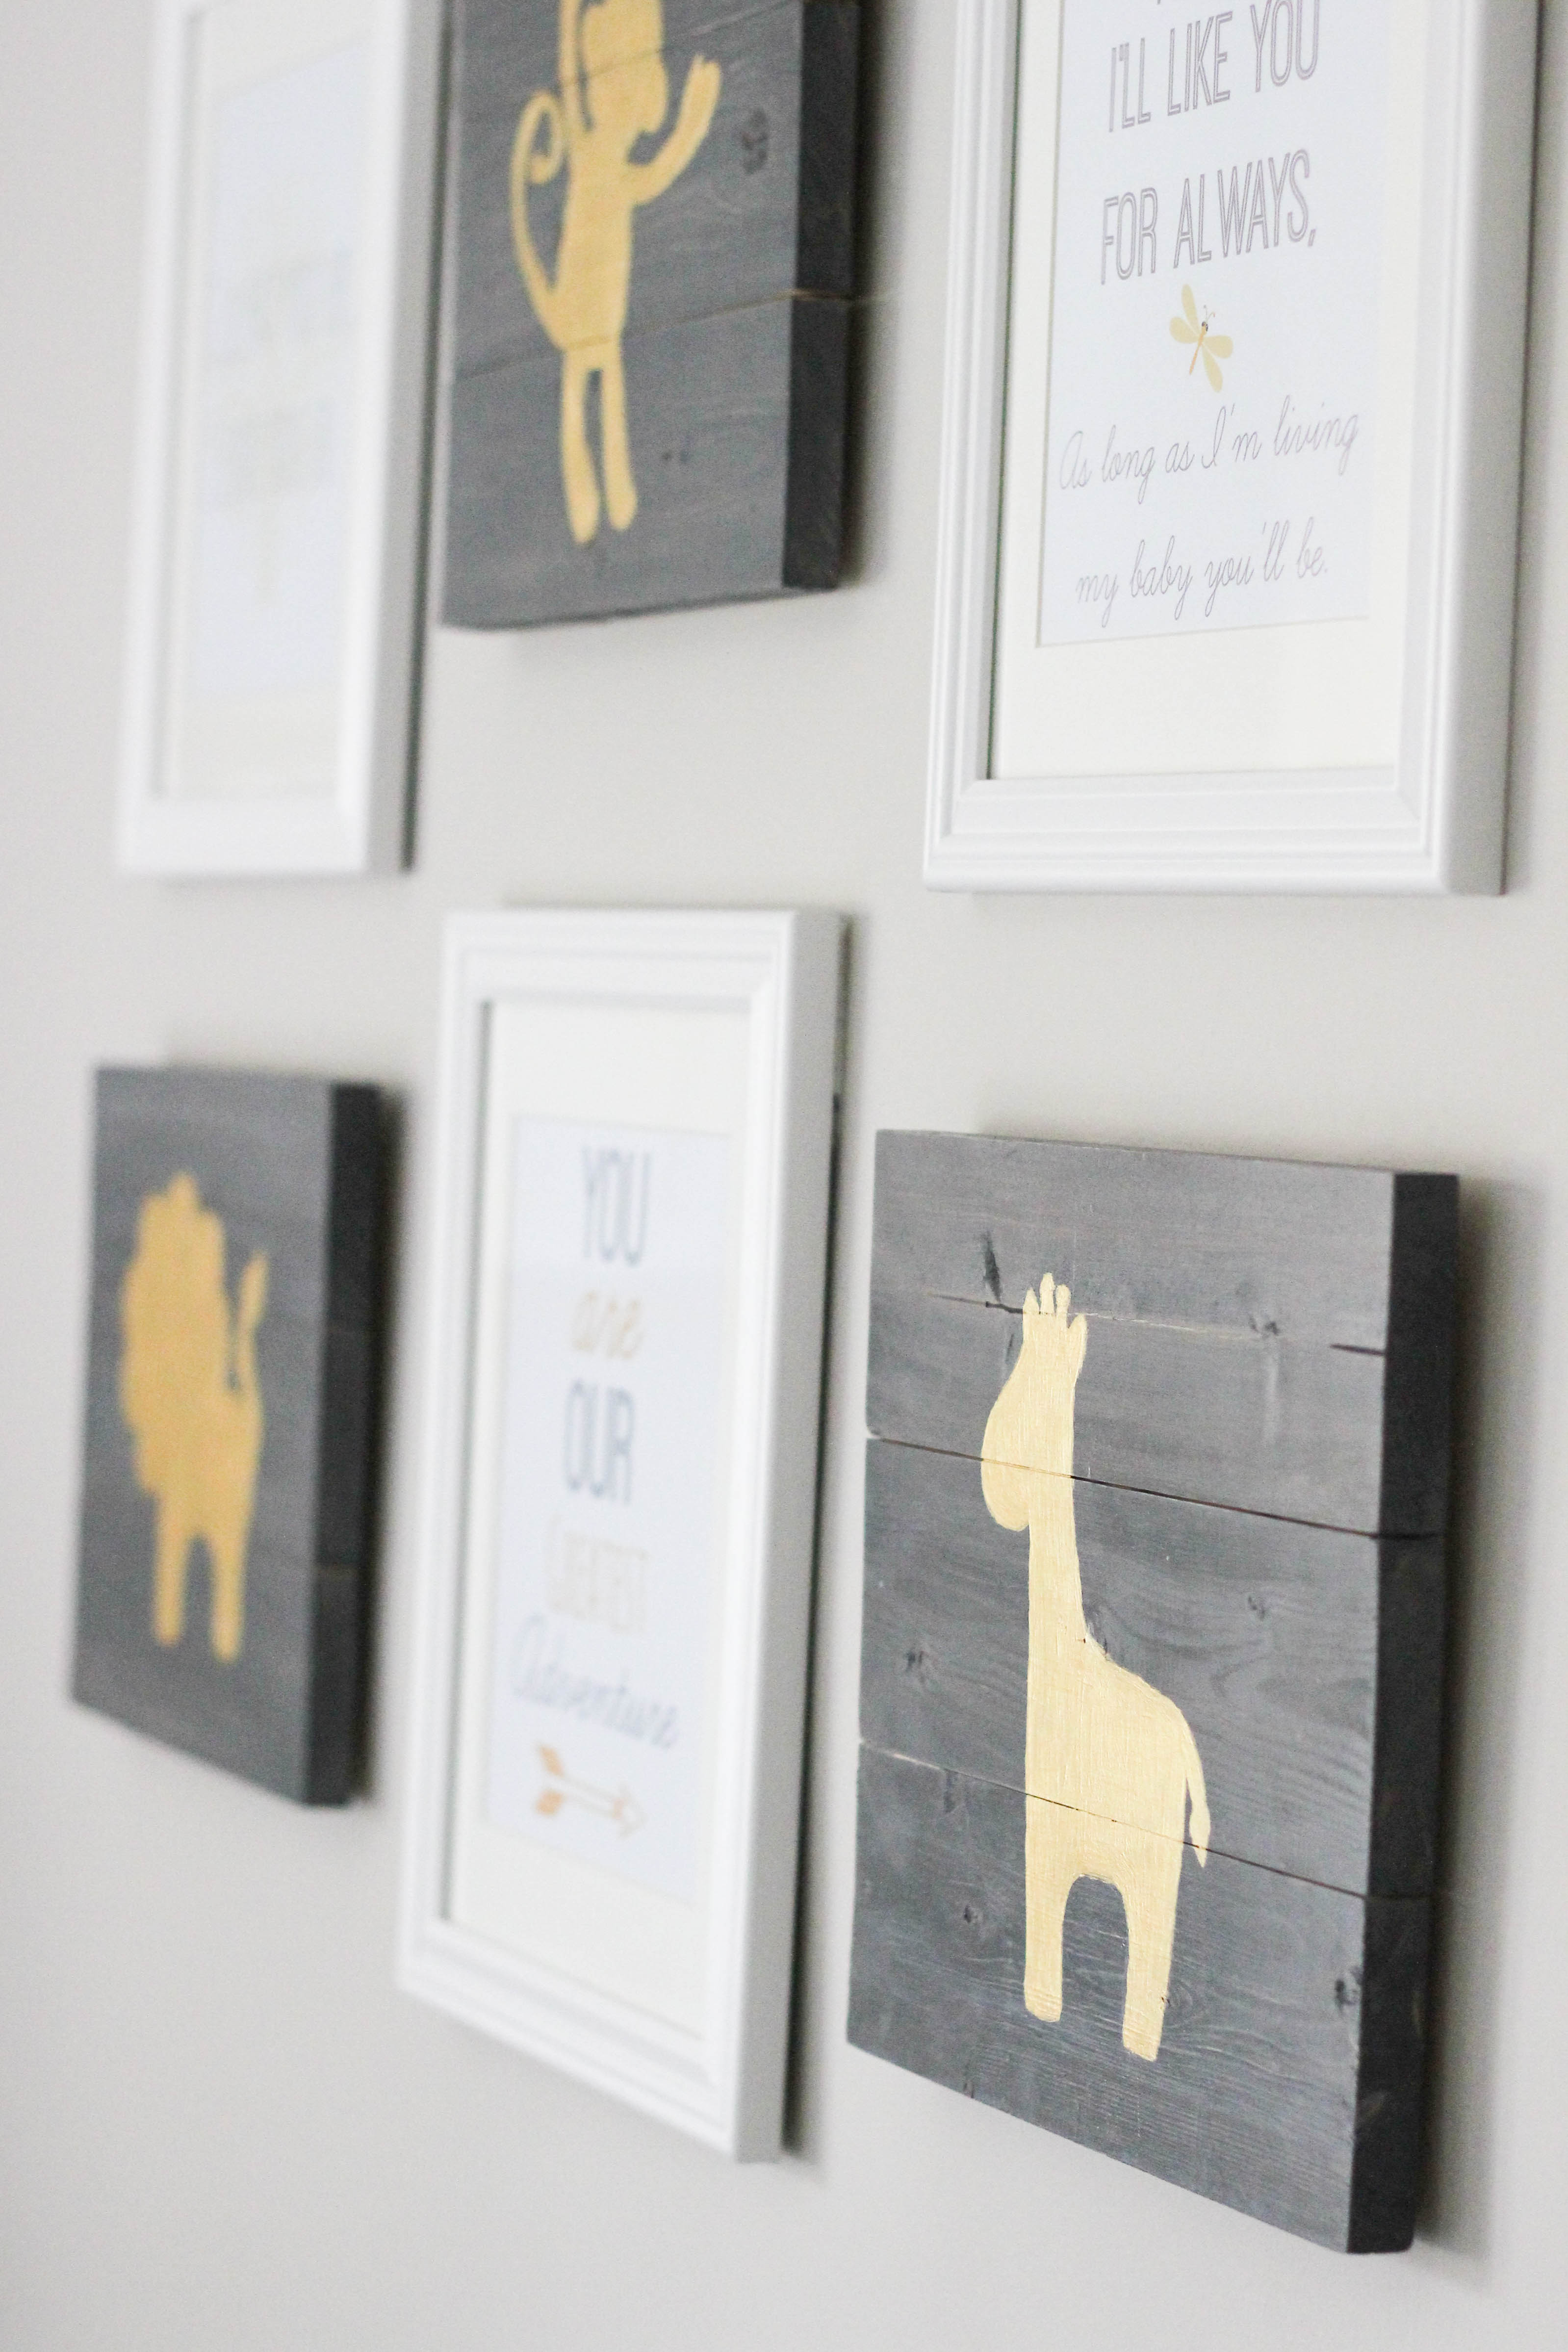 Even If You Don T Have A Nursery To Decorate This Artwork Would Make Great Baby Gift I Love Handmade Gifts And These Are Pretty Easy